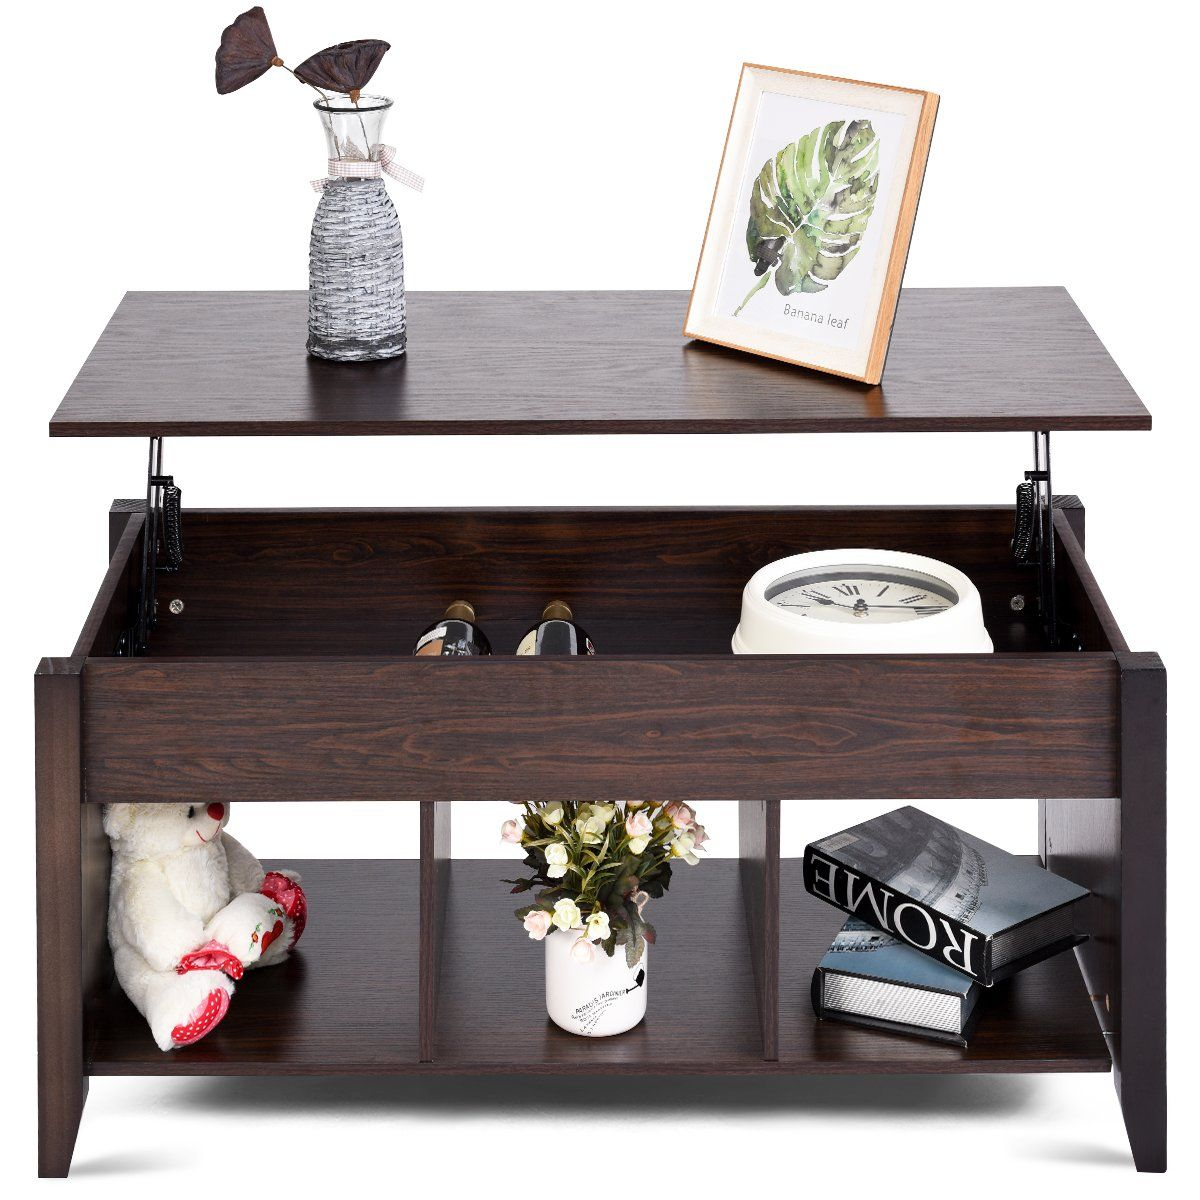 Tangkula Coffee Table Home Lift Top With Under Storage Shelf Living Room Furniture Tea Table You Wood Furniture Living Room Living Room Wood Modern Shelving [ 1200 x 1200 Pixel ]